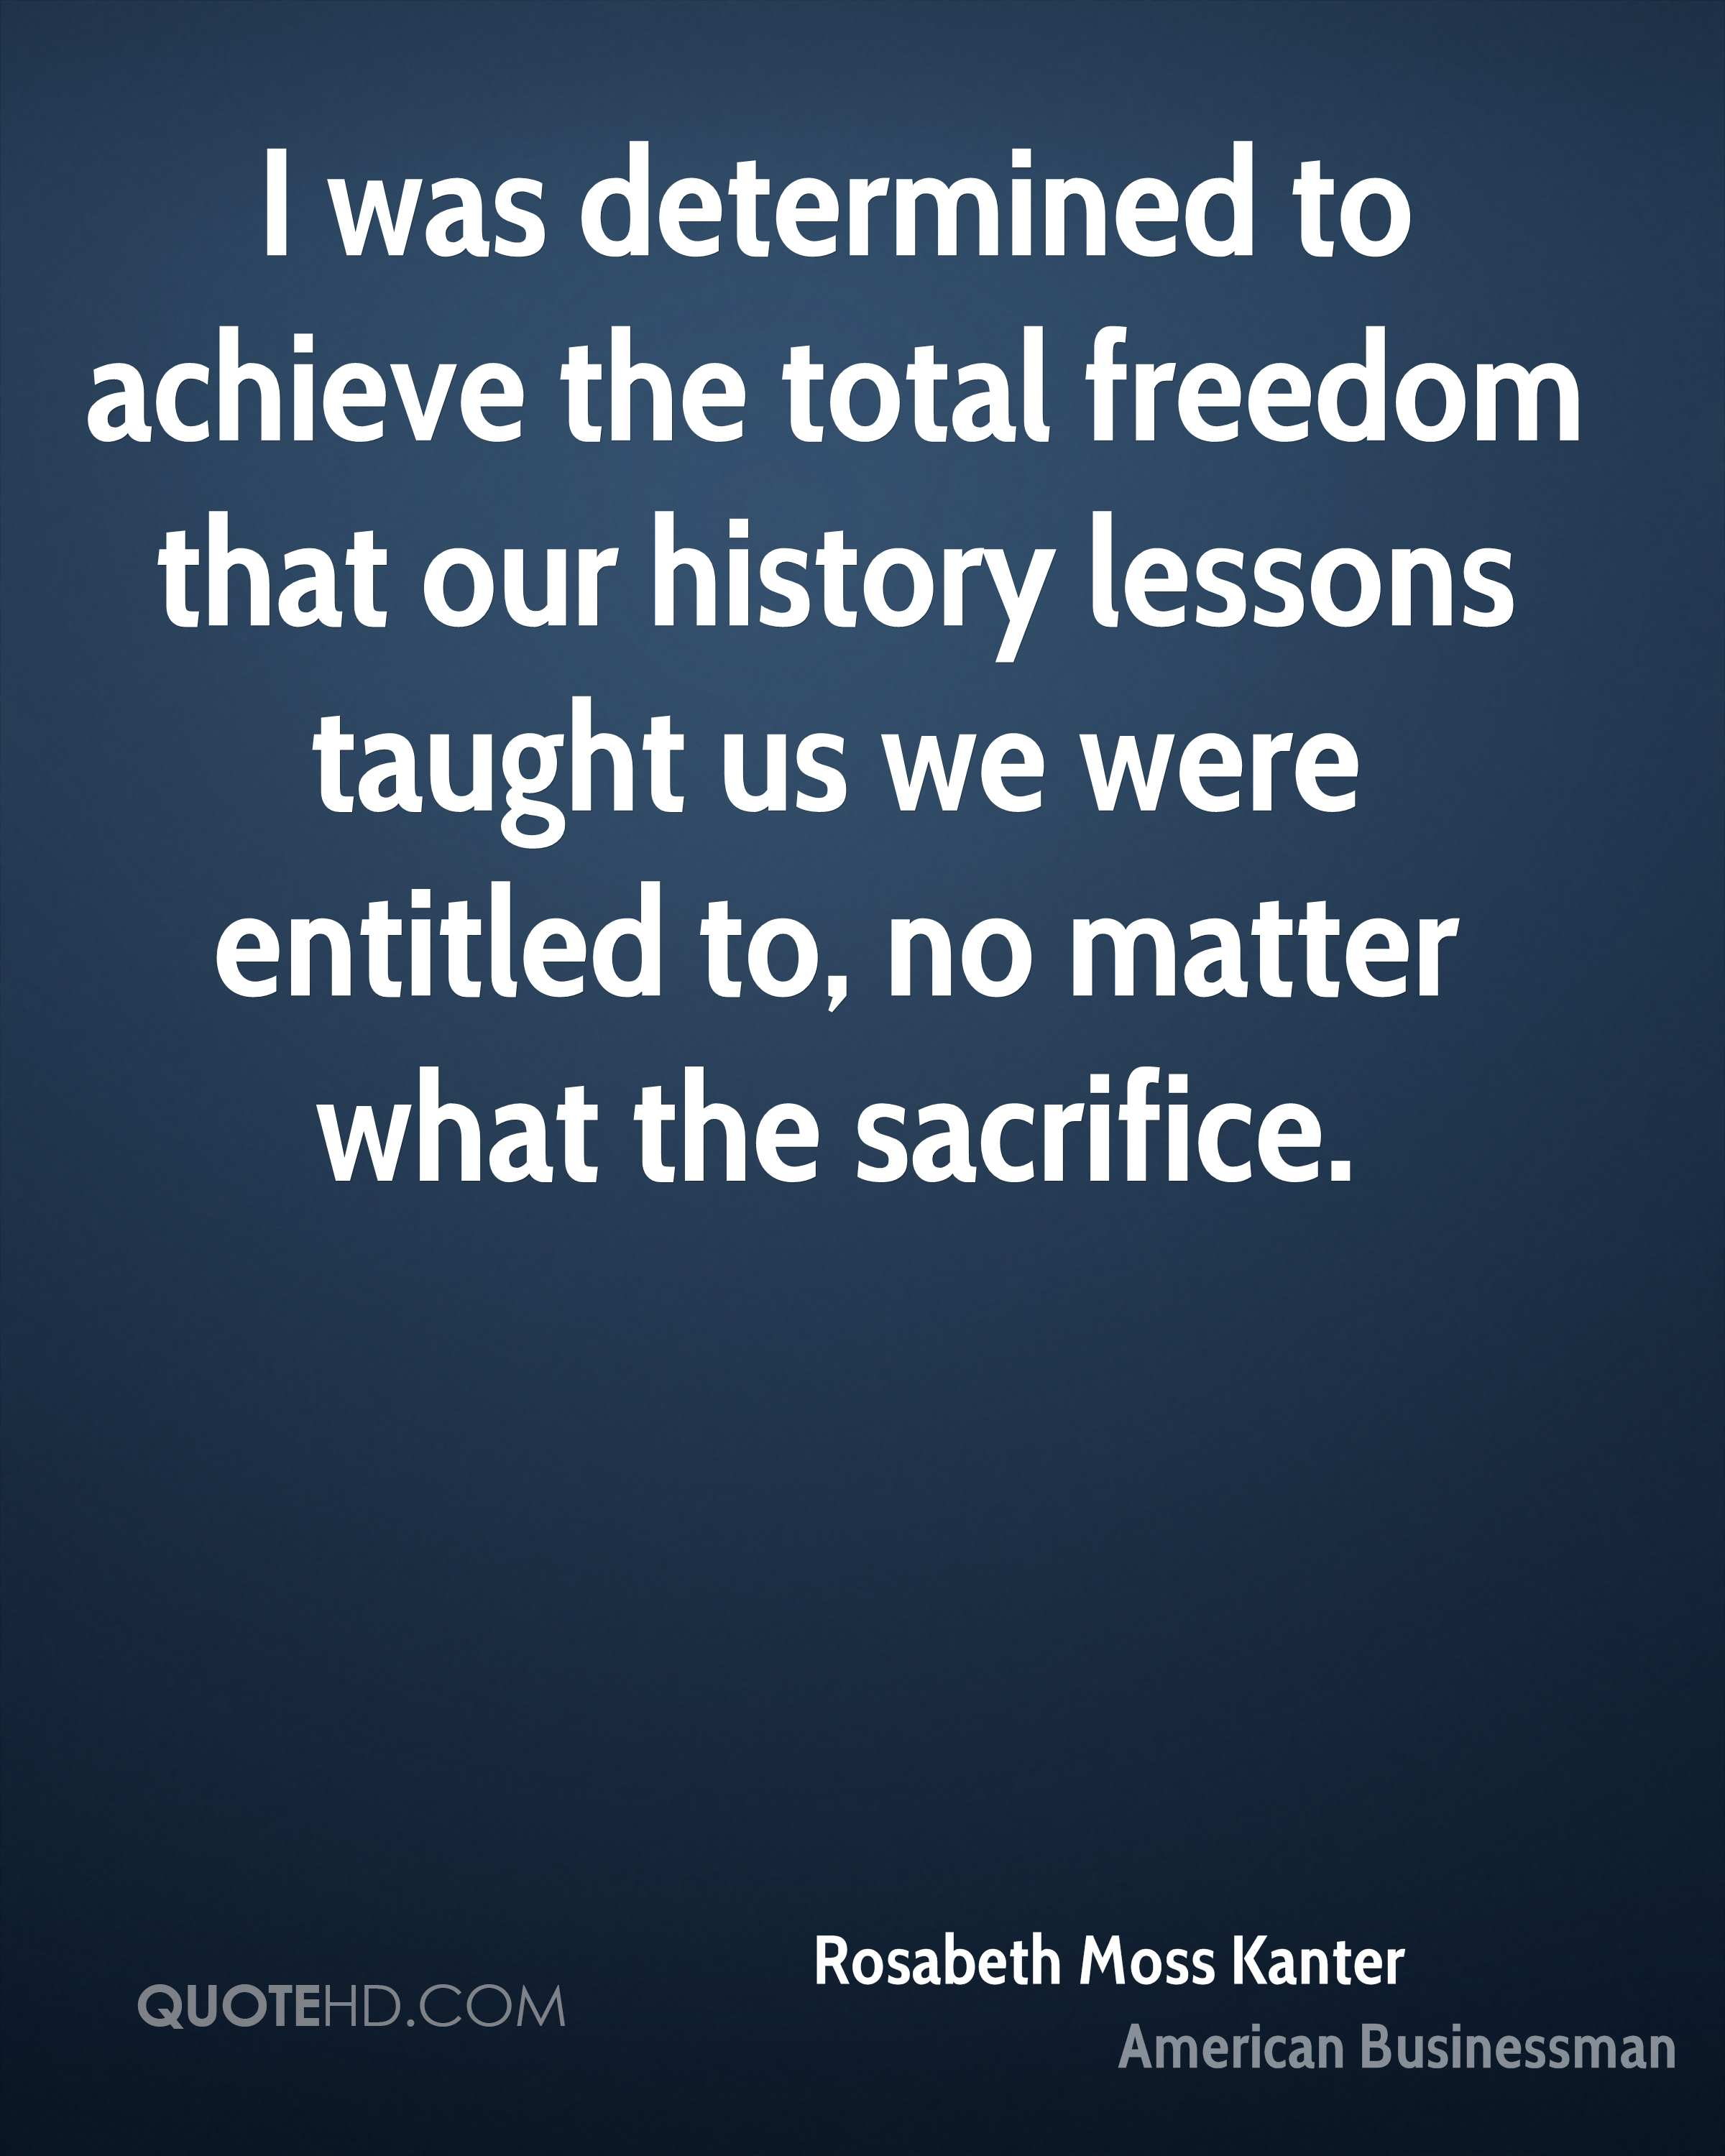 I was determined to achieve the total freedom that our history lessons taught us we were entitled to, no matter what the sacrifice.